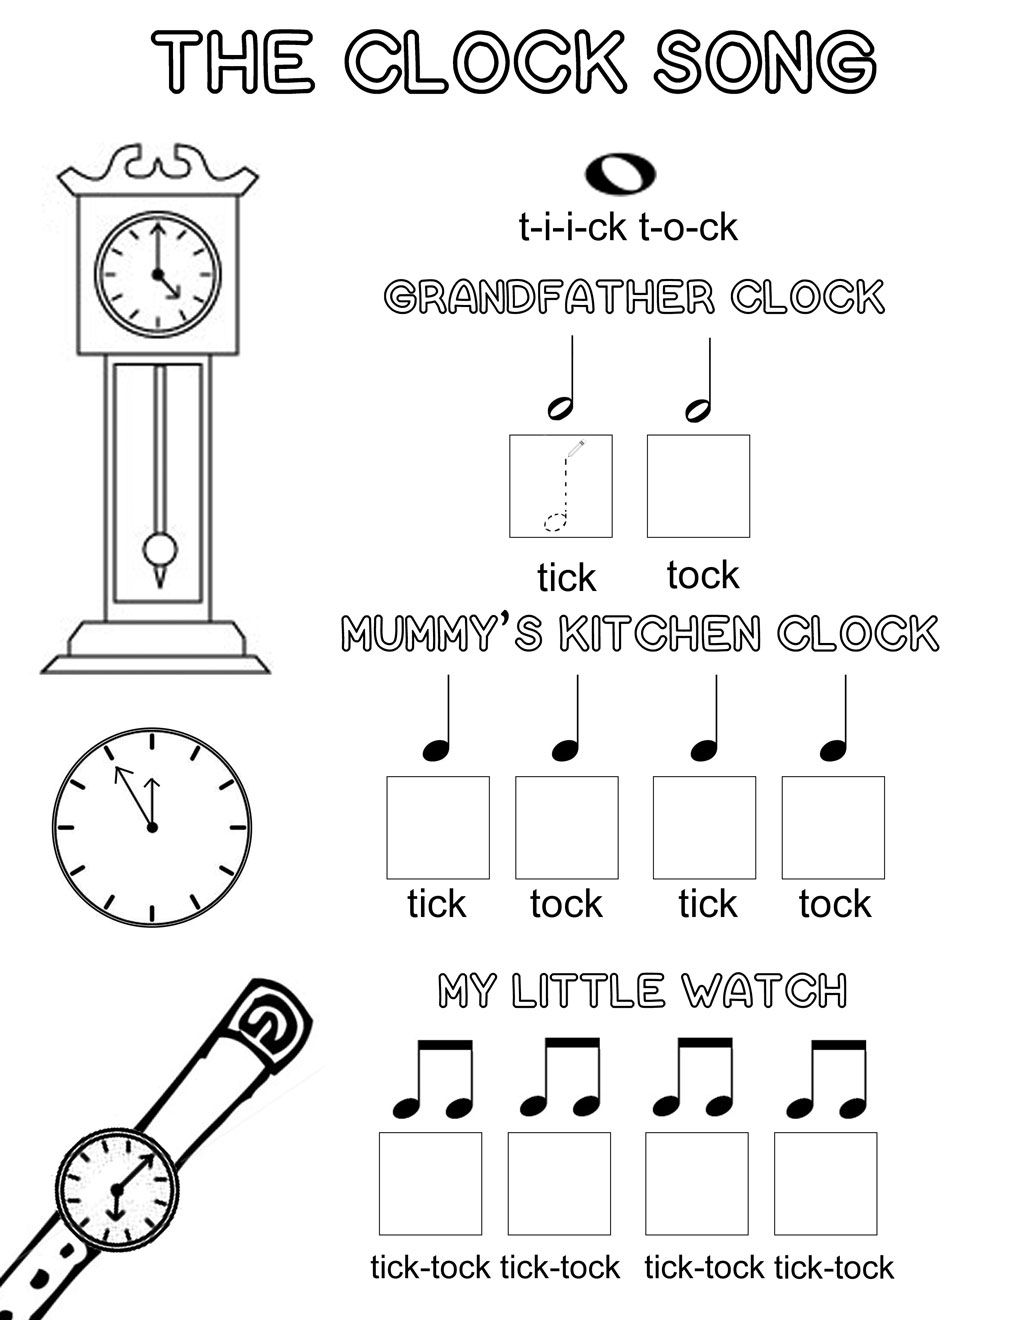 The Clock Song An Easy Way to Learn Musical Note Values – Printable Music Theory Worksheets